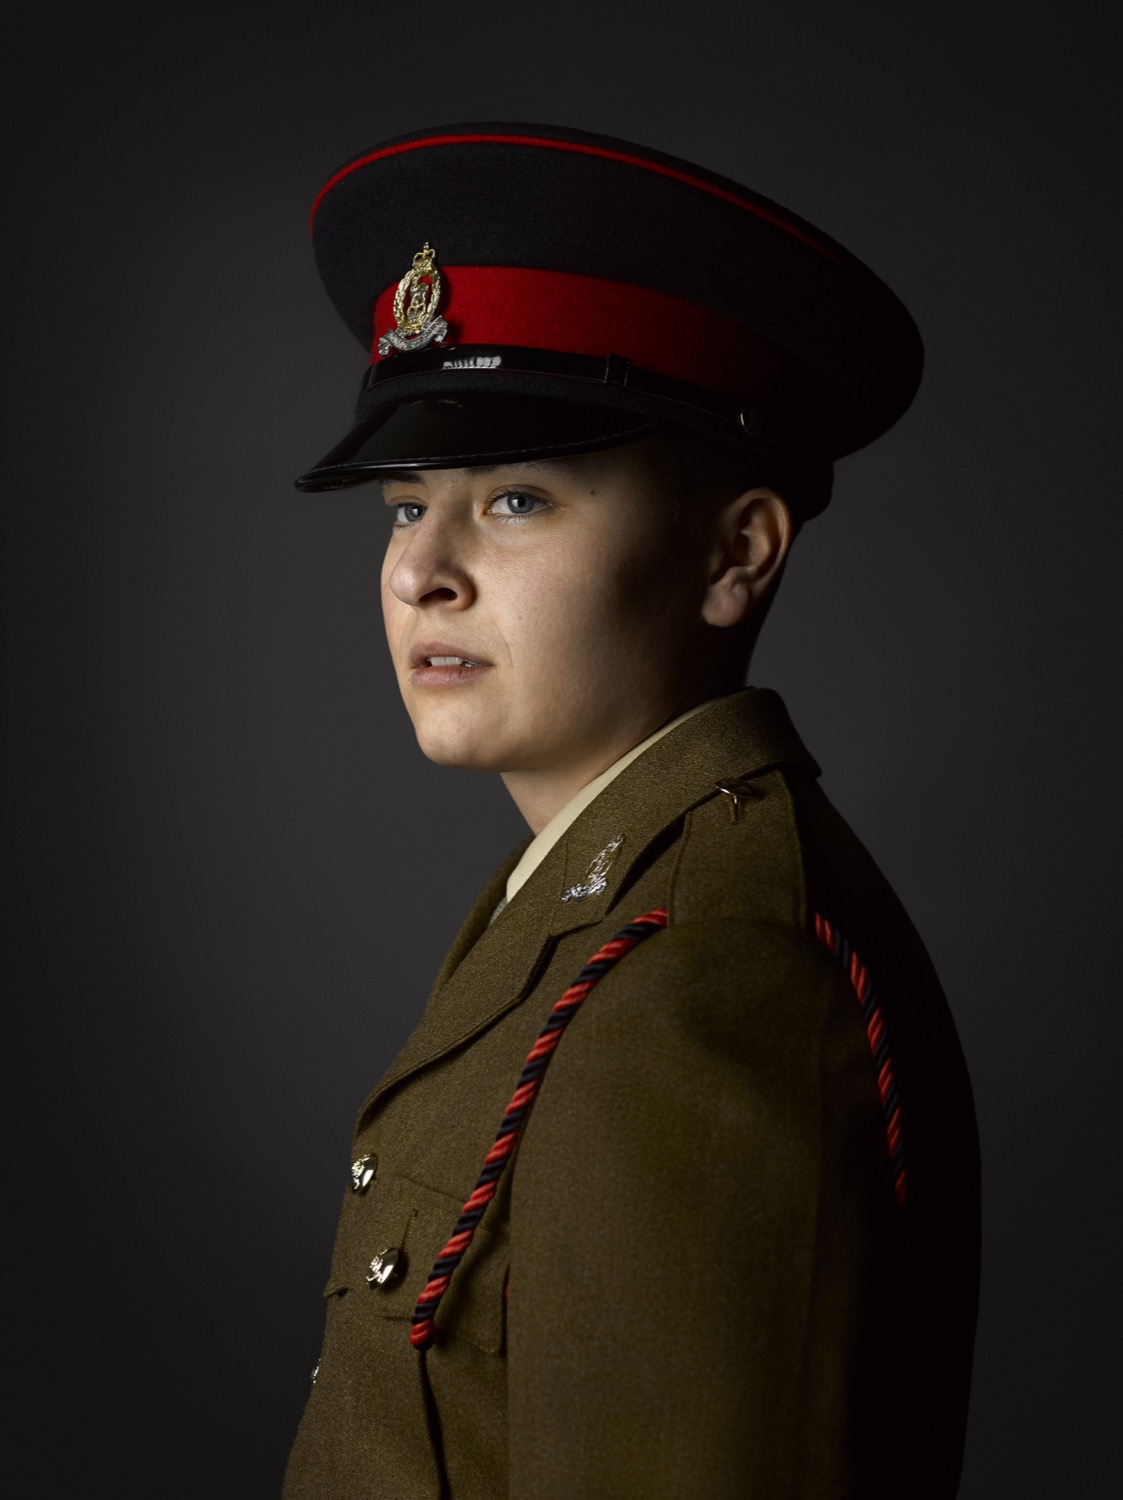 Pvt Liam Lancaster-Smith Adjutant General's Corps (Rory Lewis Photographer) 2018 Transgender Army Portraits